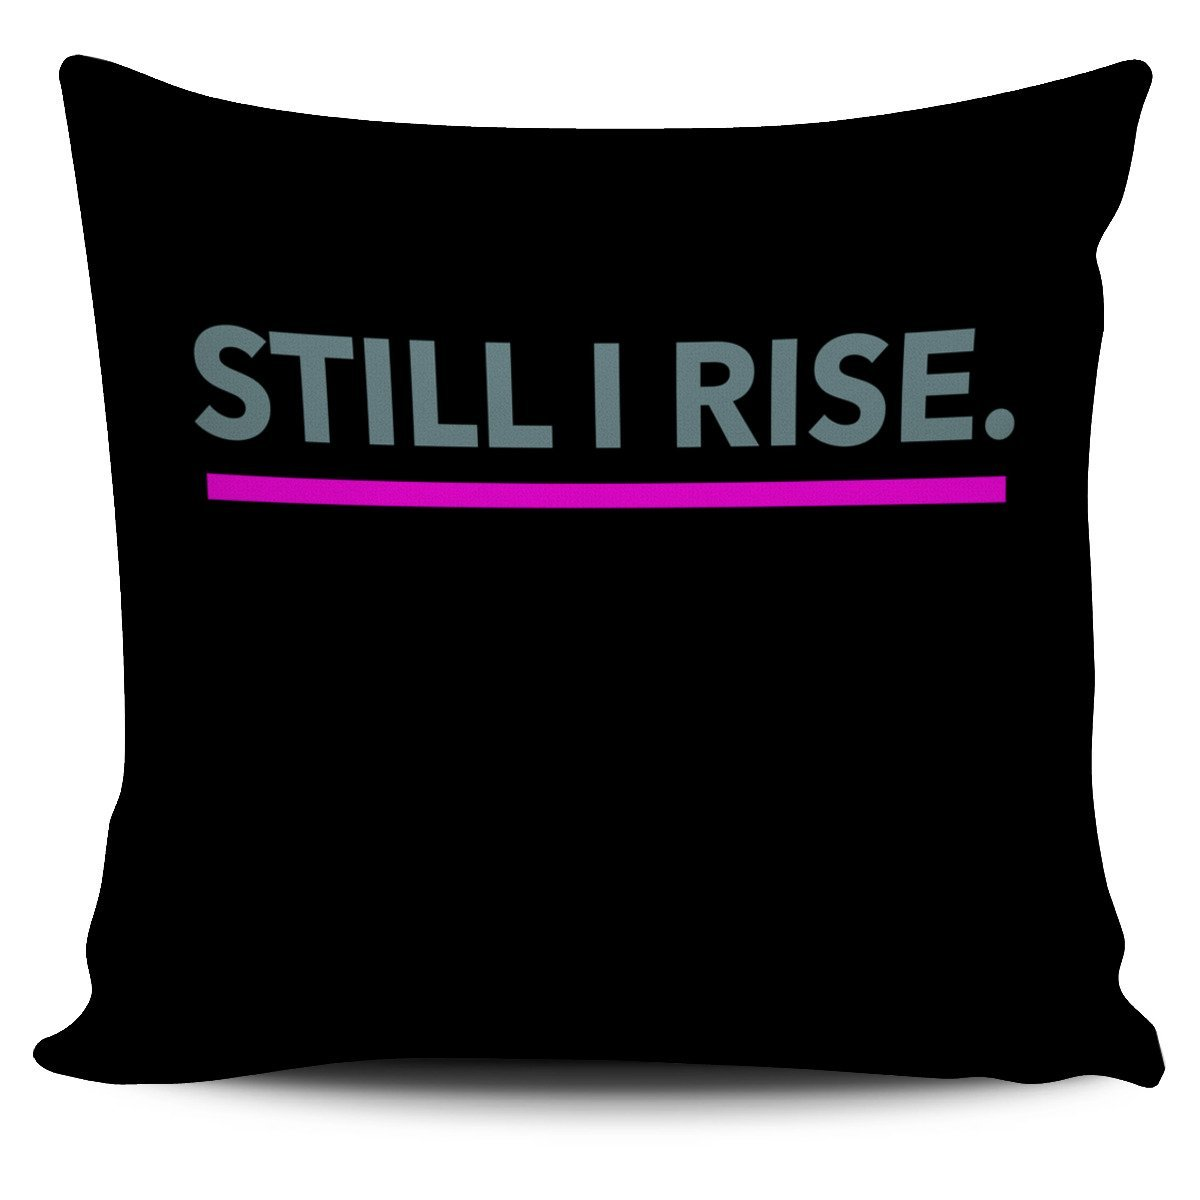 """Still I rise."" Pillow Cover"